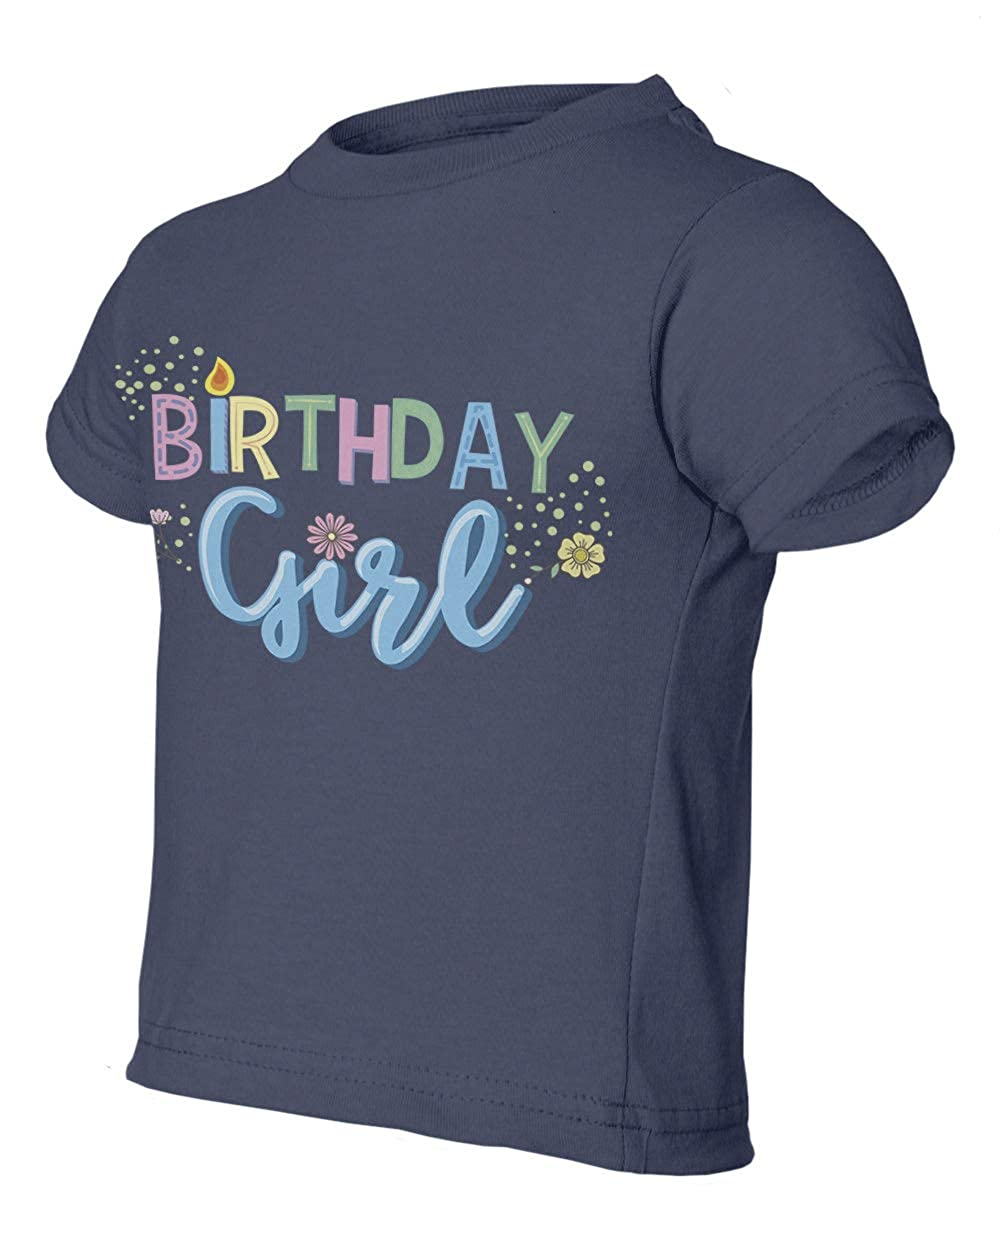 Letters The Birthday Girl Youth /& Toddler Tee Shirt